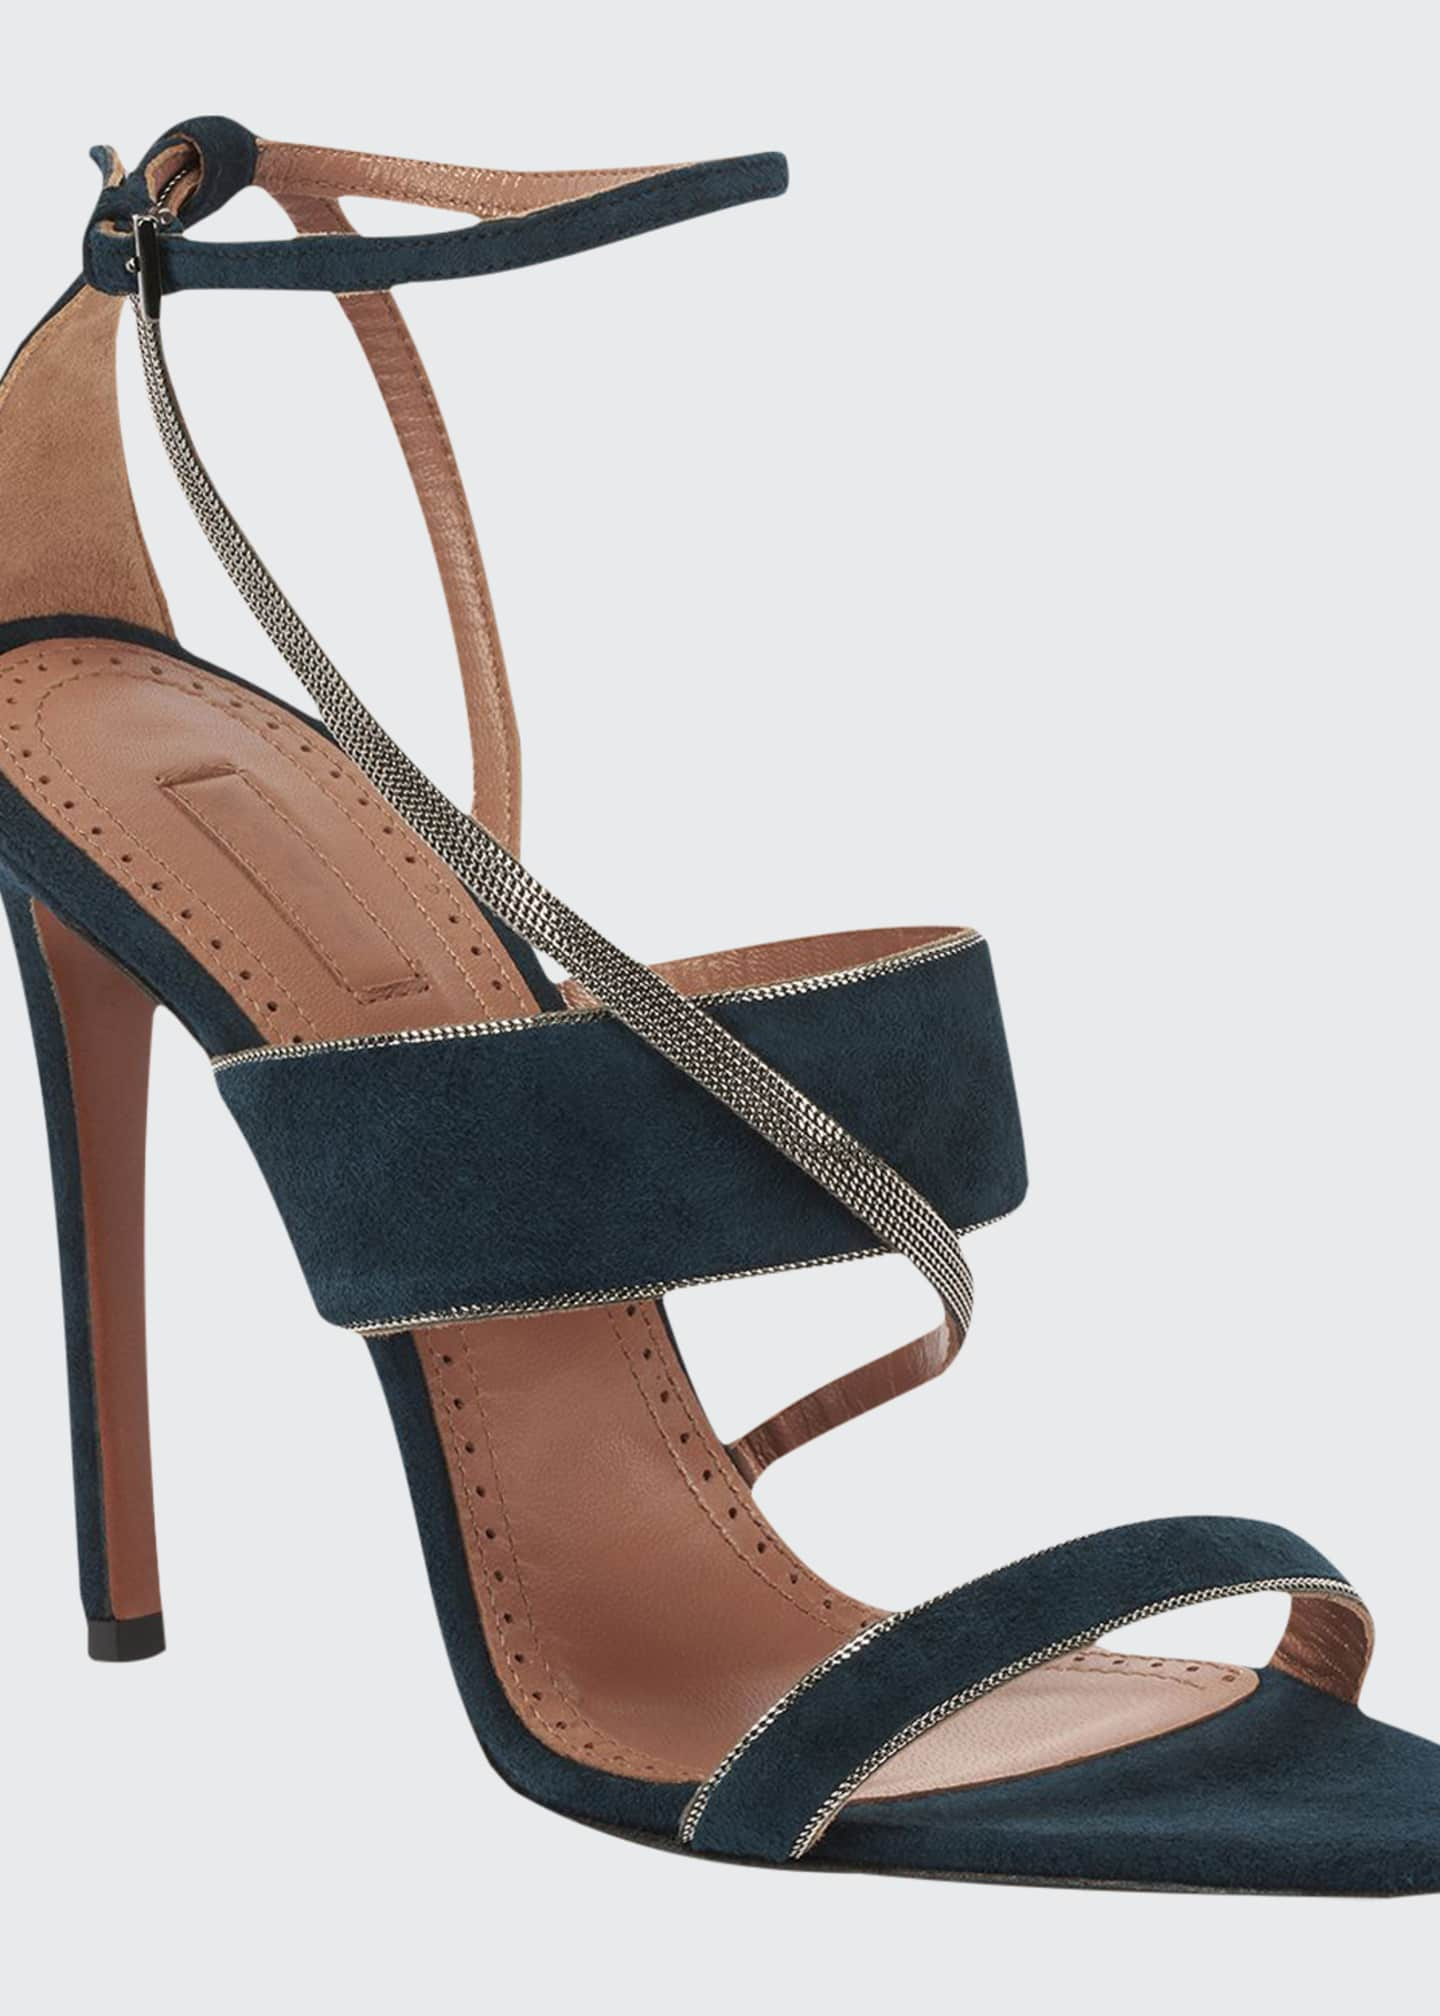 ALAIA Suede Chain Ankle-Strap Sandals